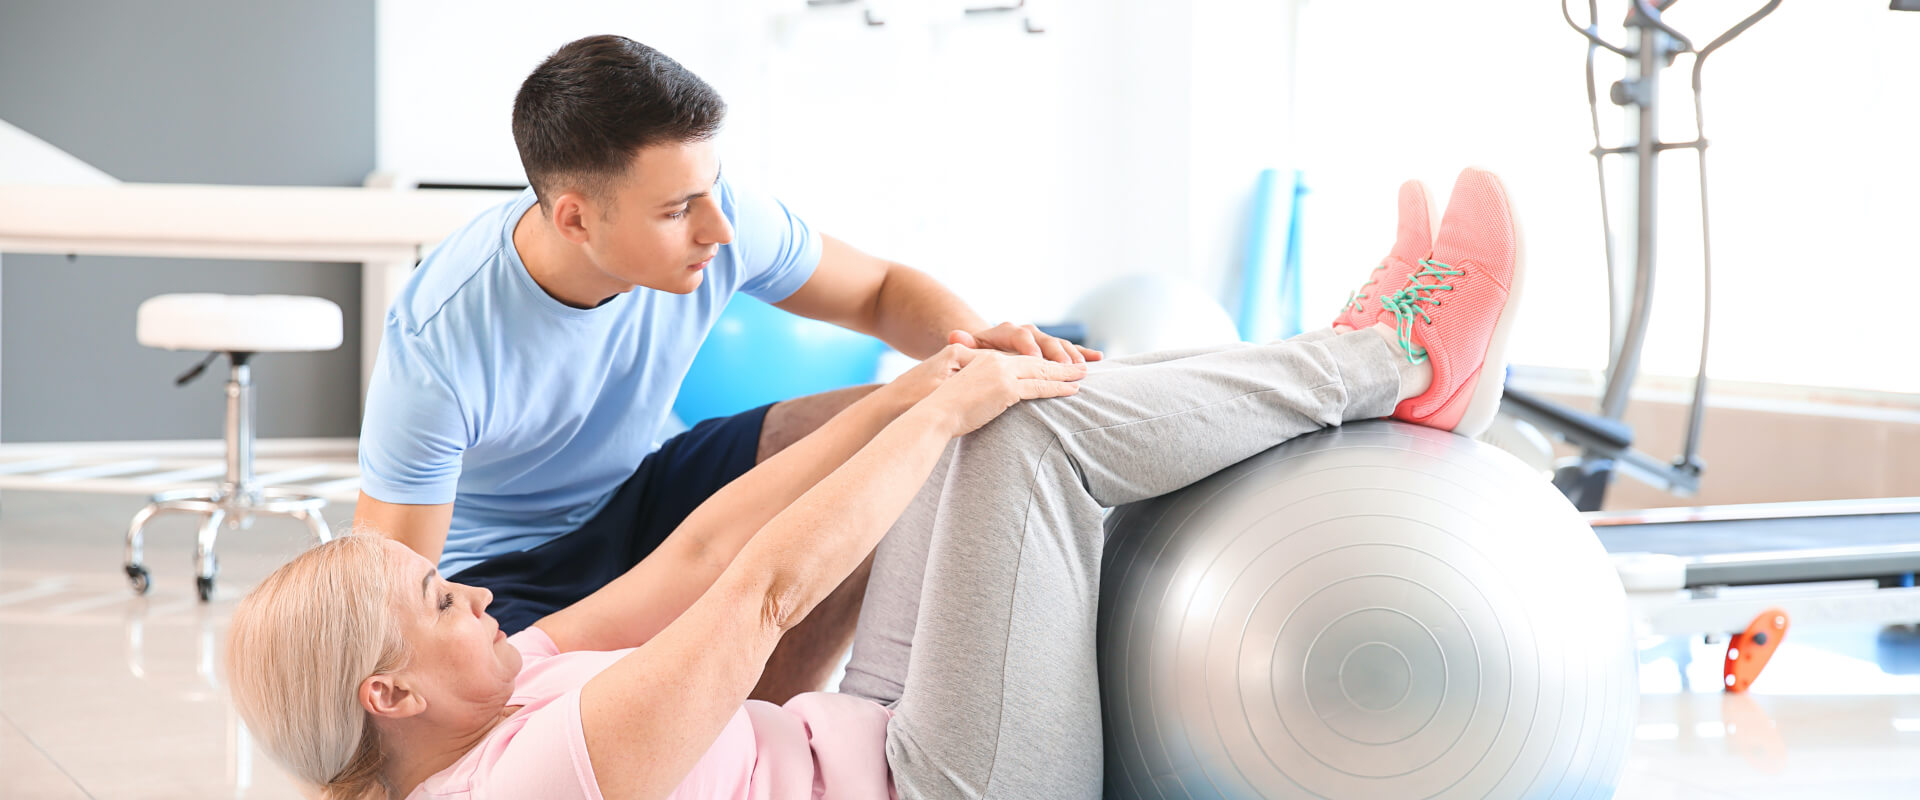 Pure Physical Therapy provides pain relief McAllen, TX